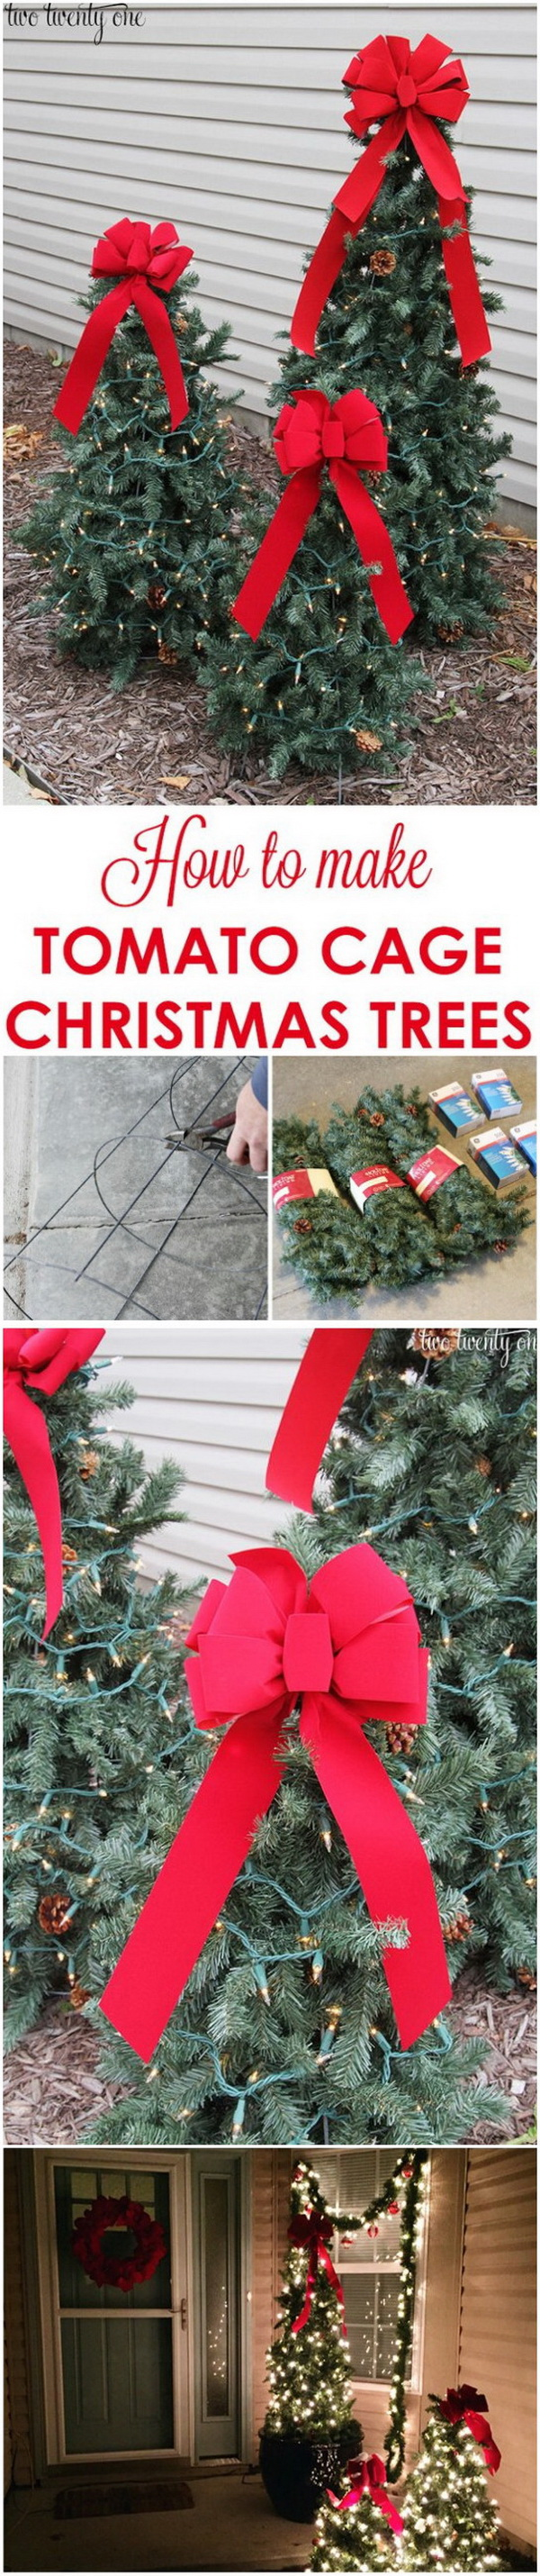 Tiered Tomato Cage Christmas Trees. Make outdoor Christmas trees with a tomato cage, them decorate them with wired garland, fairy lights and big bows on top. What a great DIY project for your garden or front porch this holiday season.